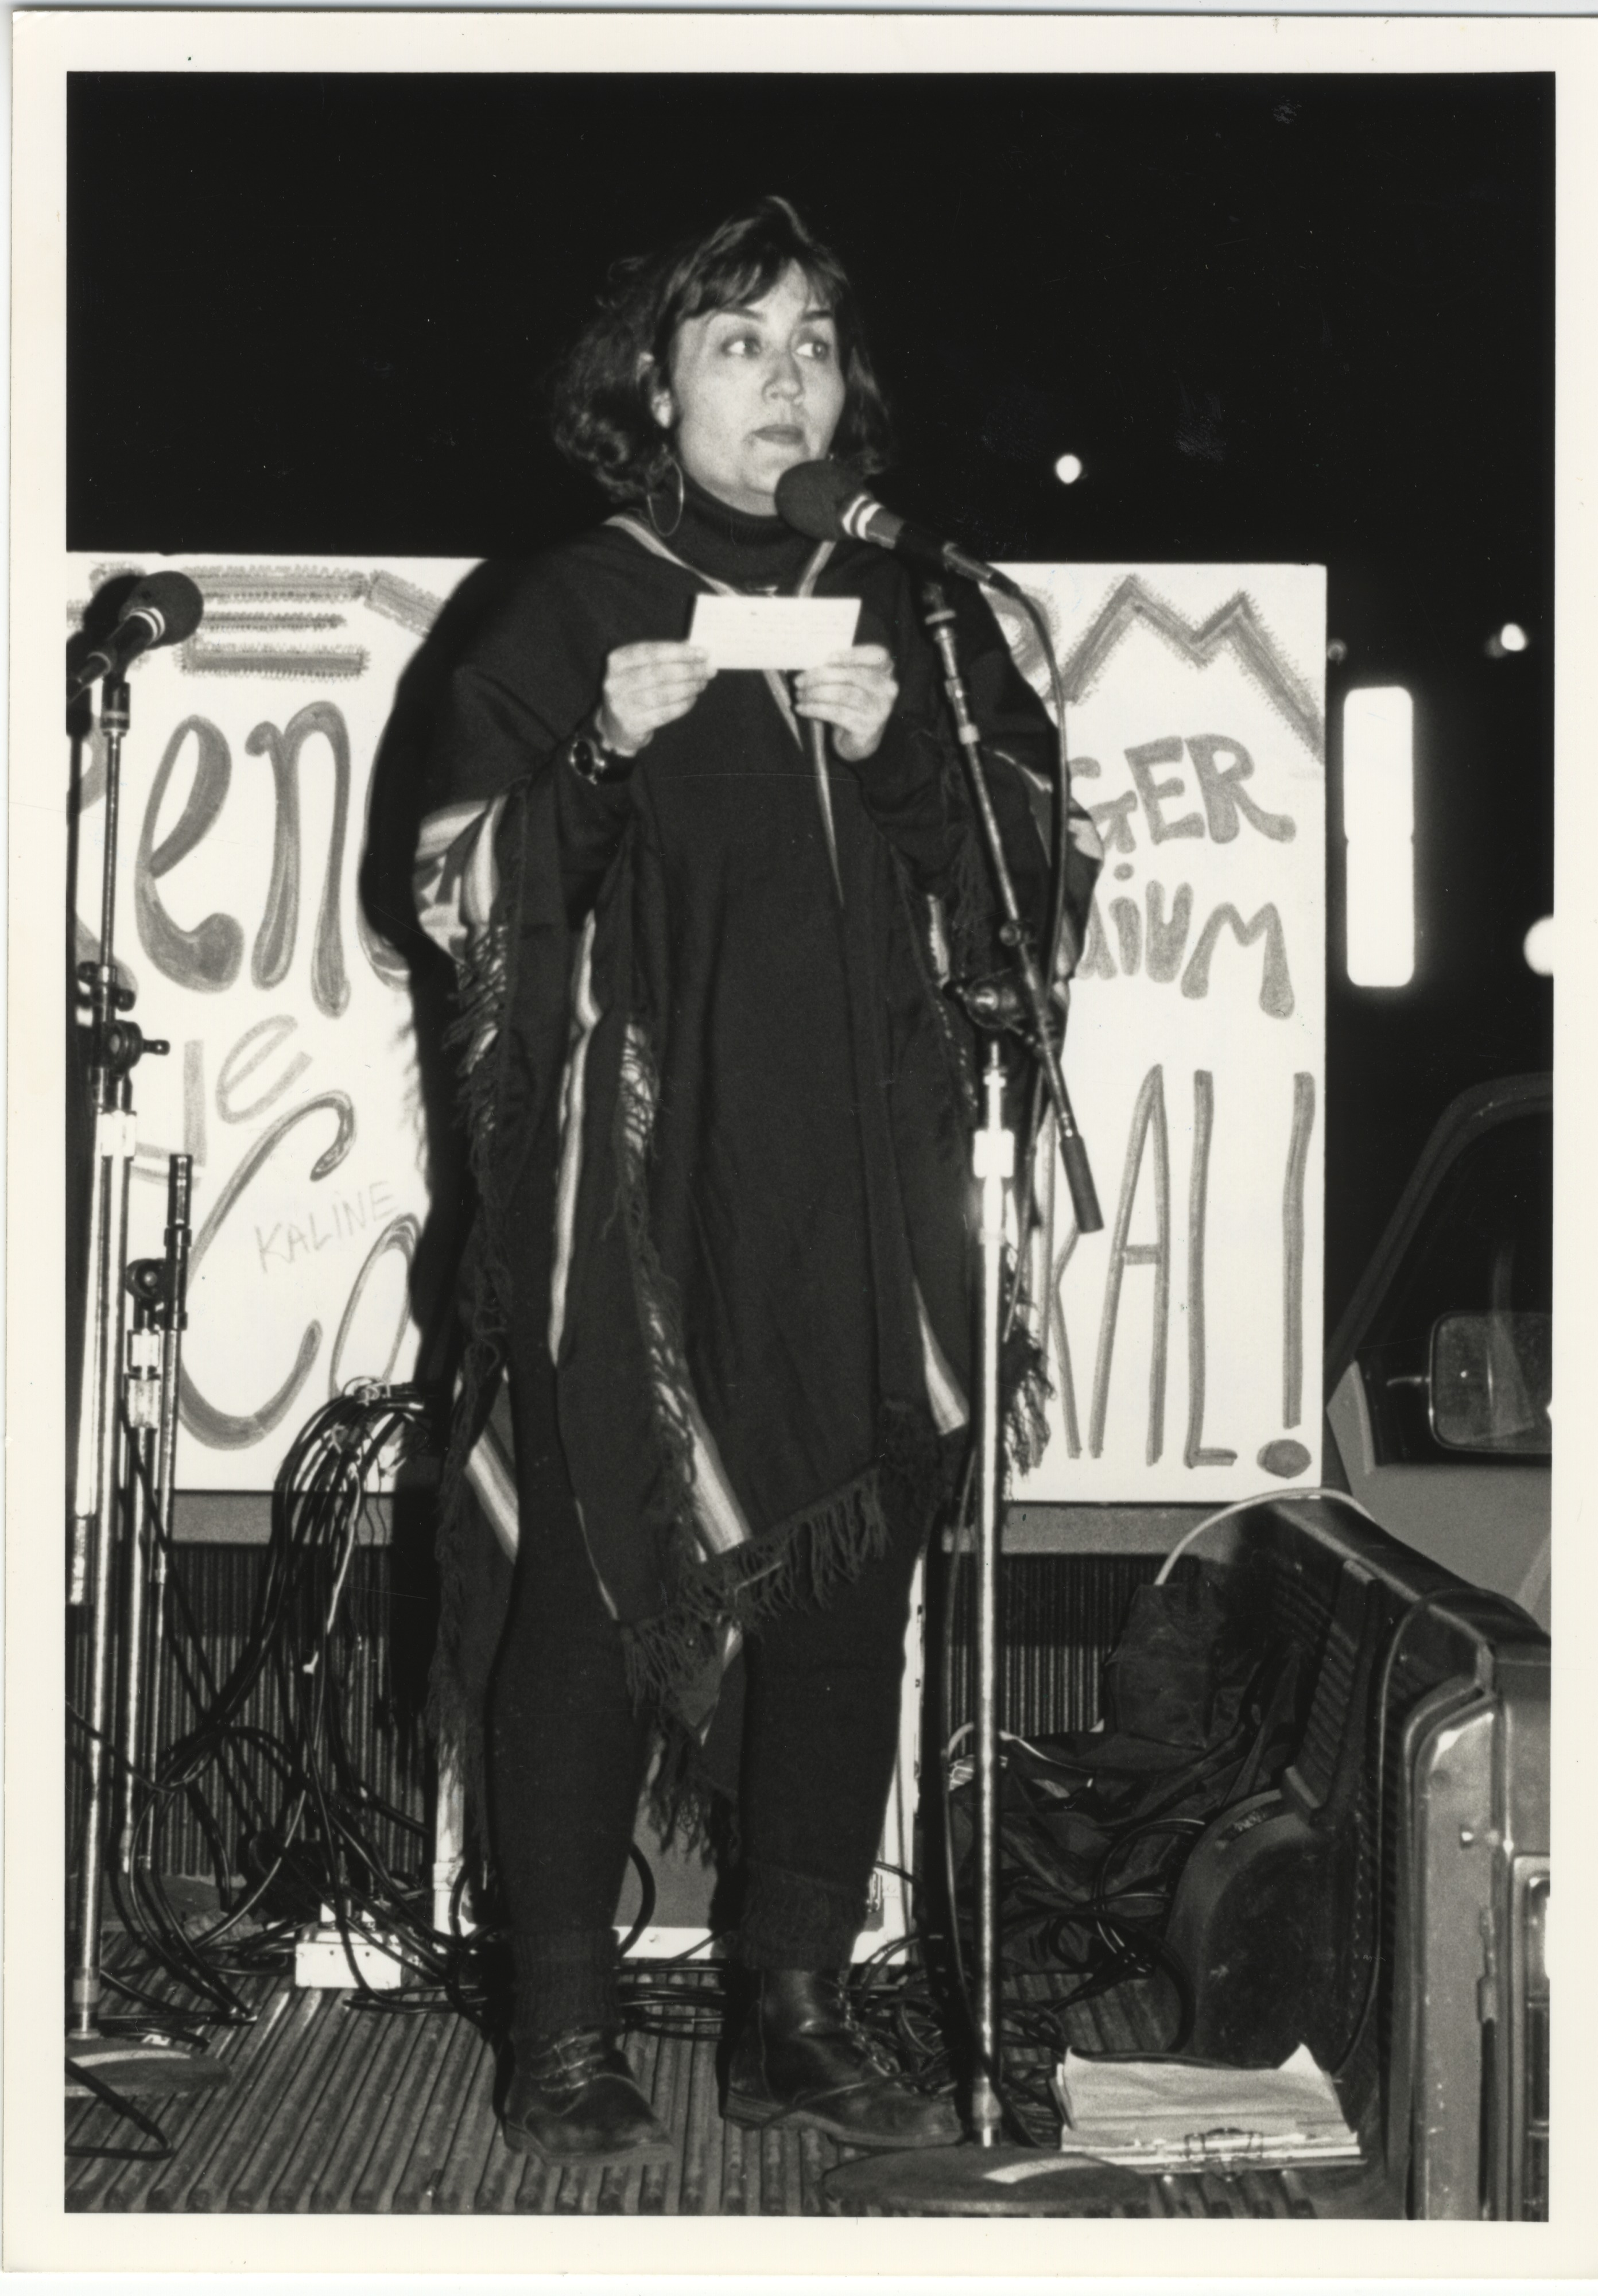 Interfaith Council for Peace and Justice: Leticia Diaz Speaks at ICPJ Protest, 1991 image